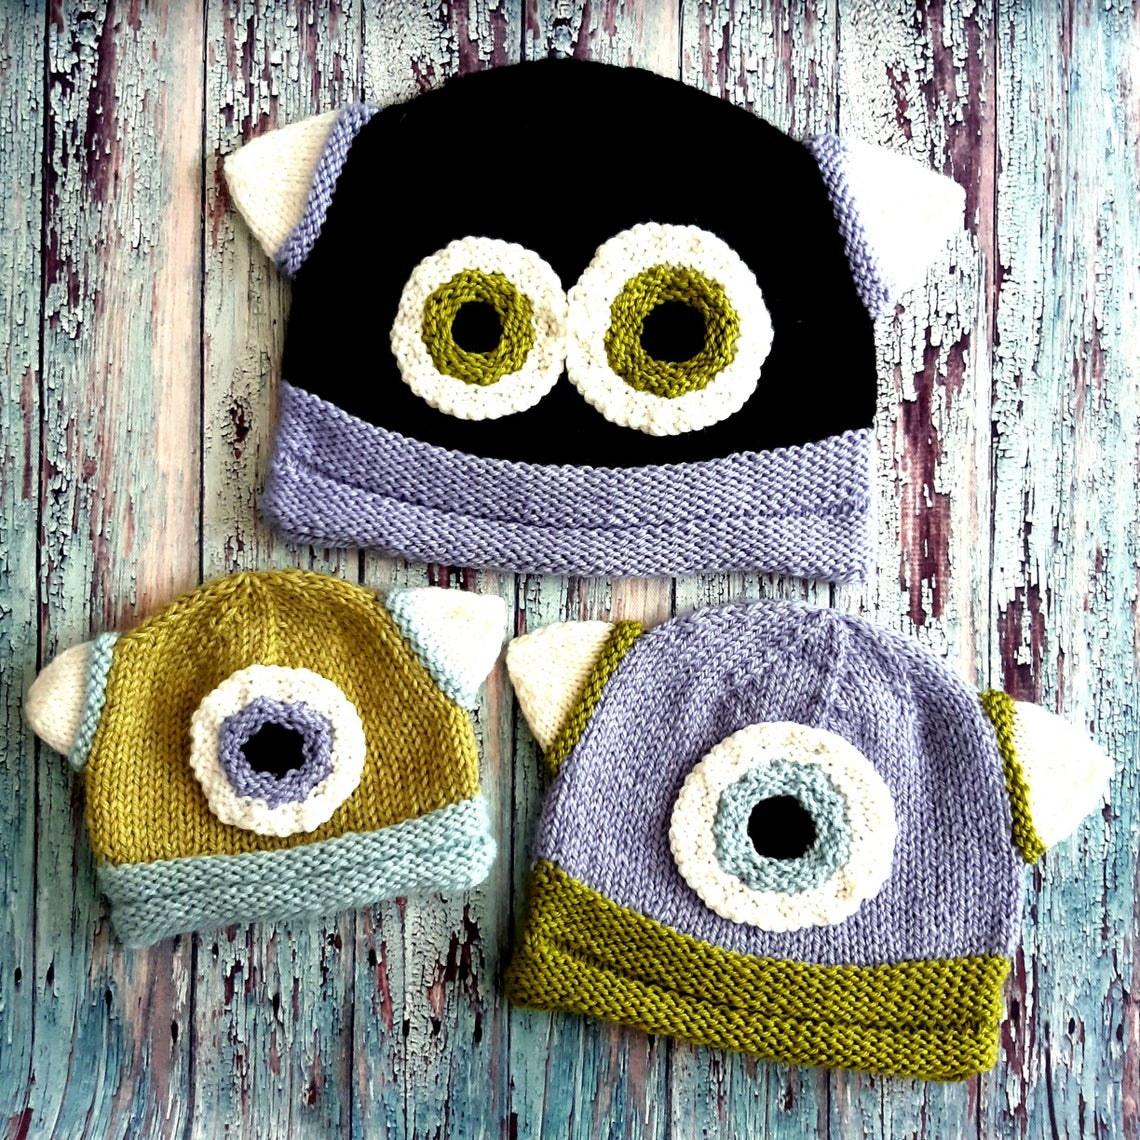 Knit a Fun Monster Beanie ... Fun For Kids, Perfectly Acceptable For Grown-Ups Too!